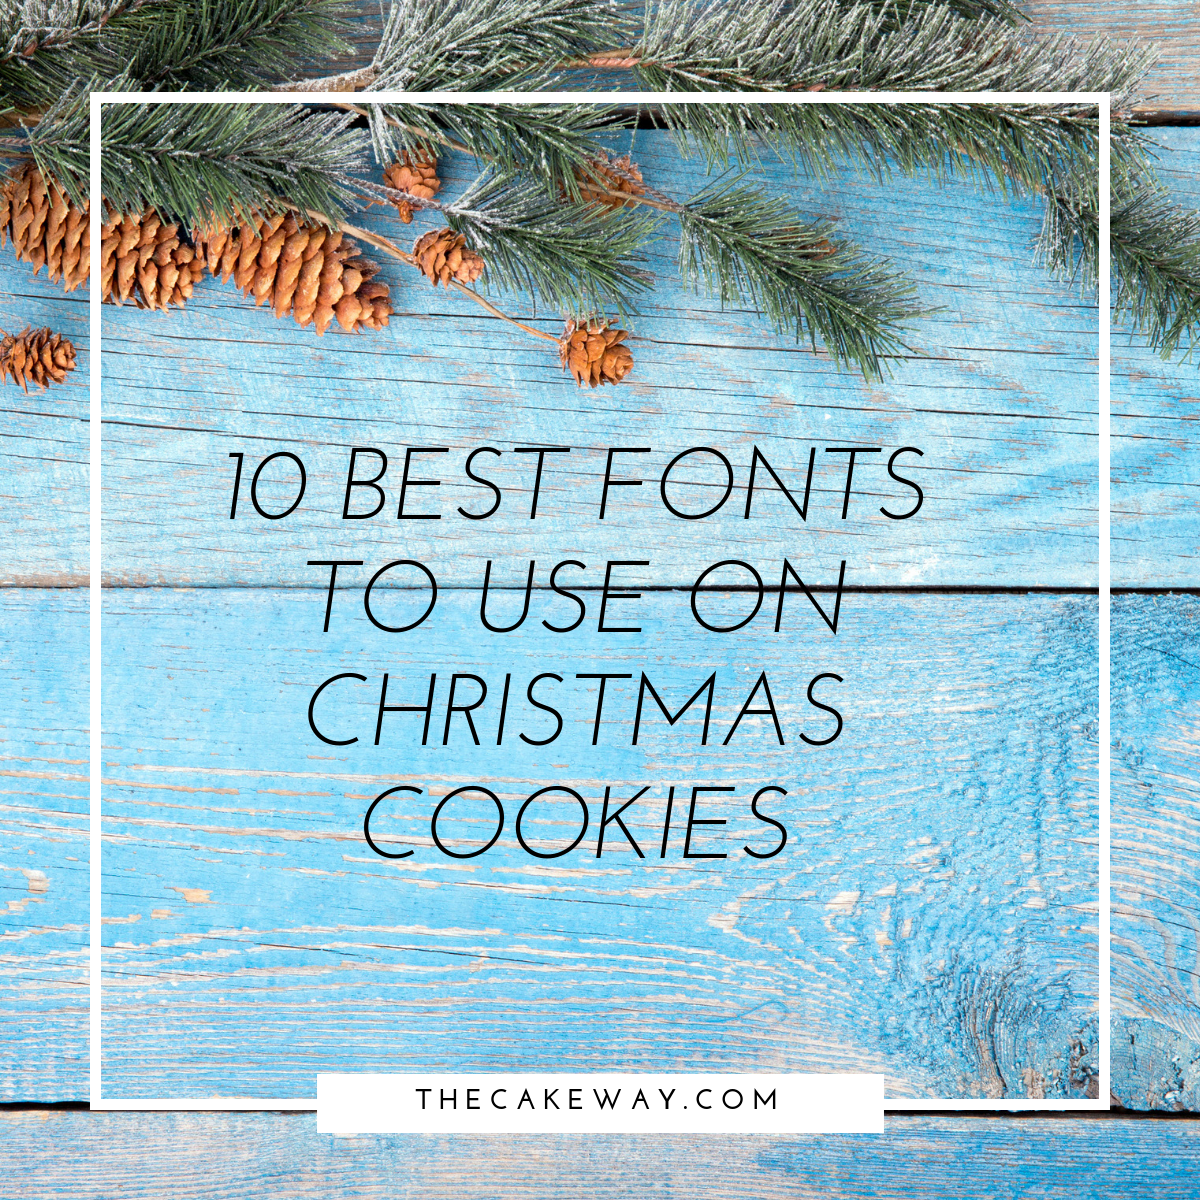 10 Best Fonts for Christmas Cookies